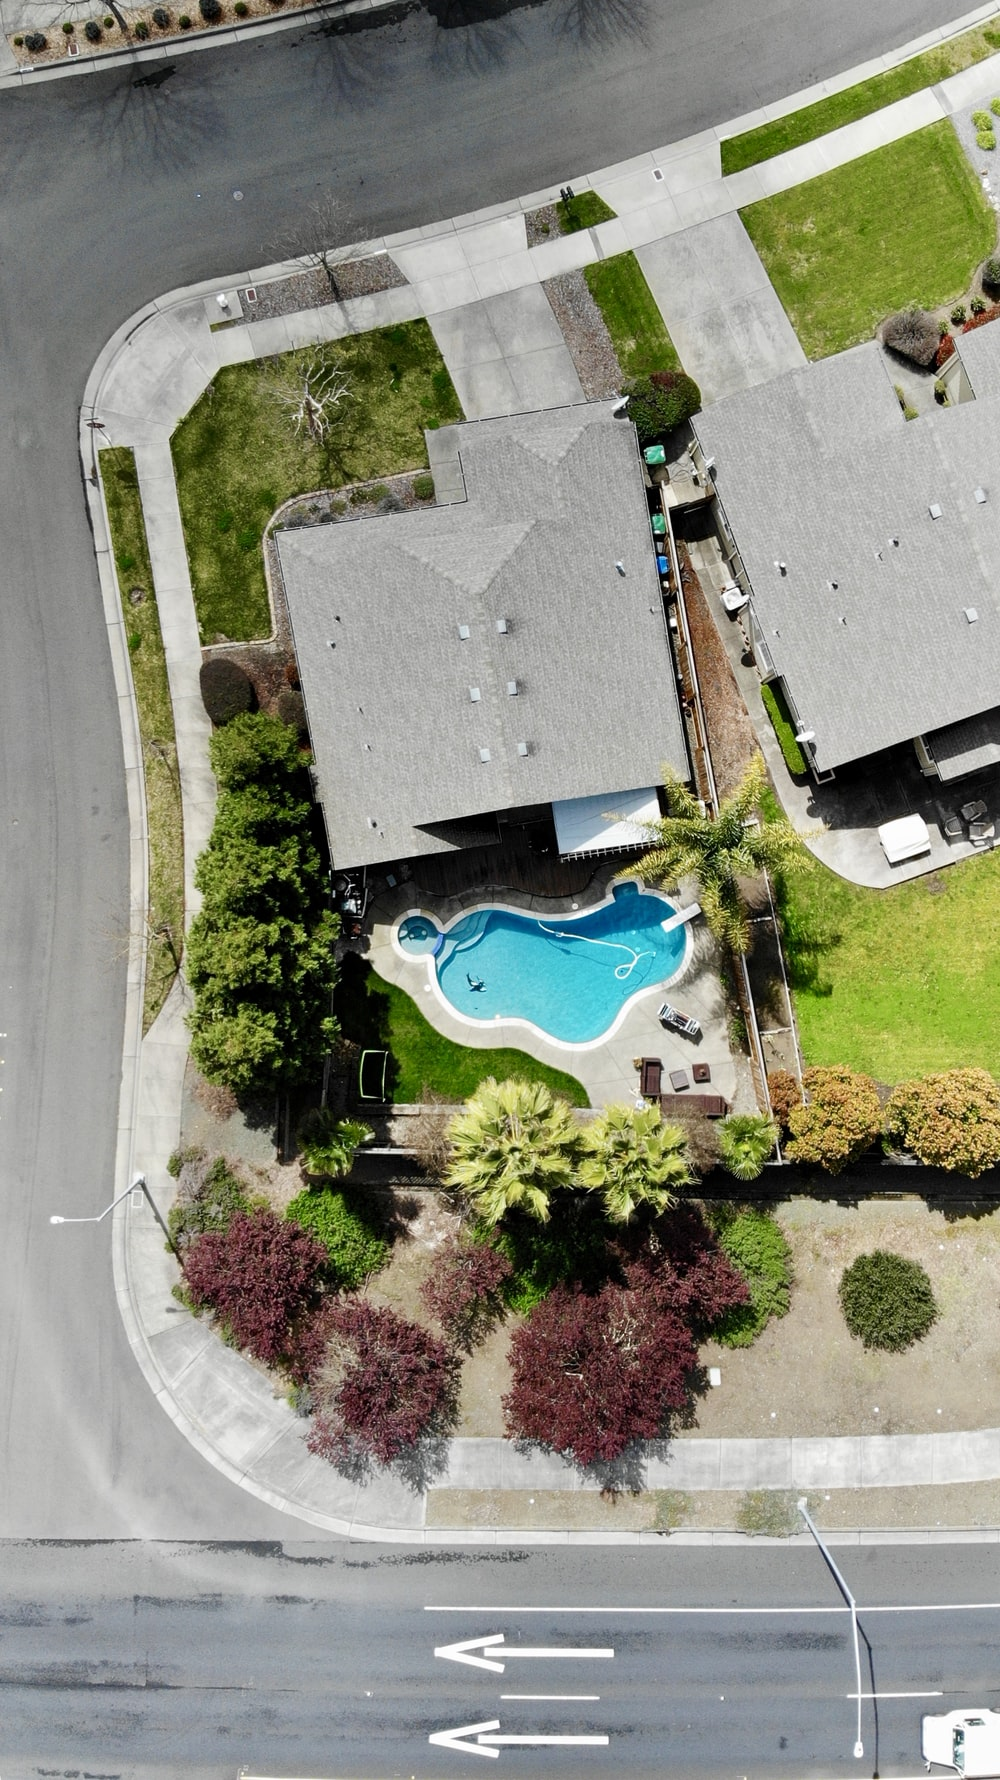 aerial photography of house with swimming pool near road